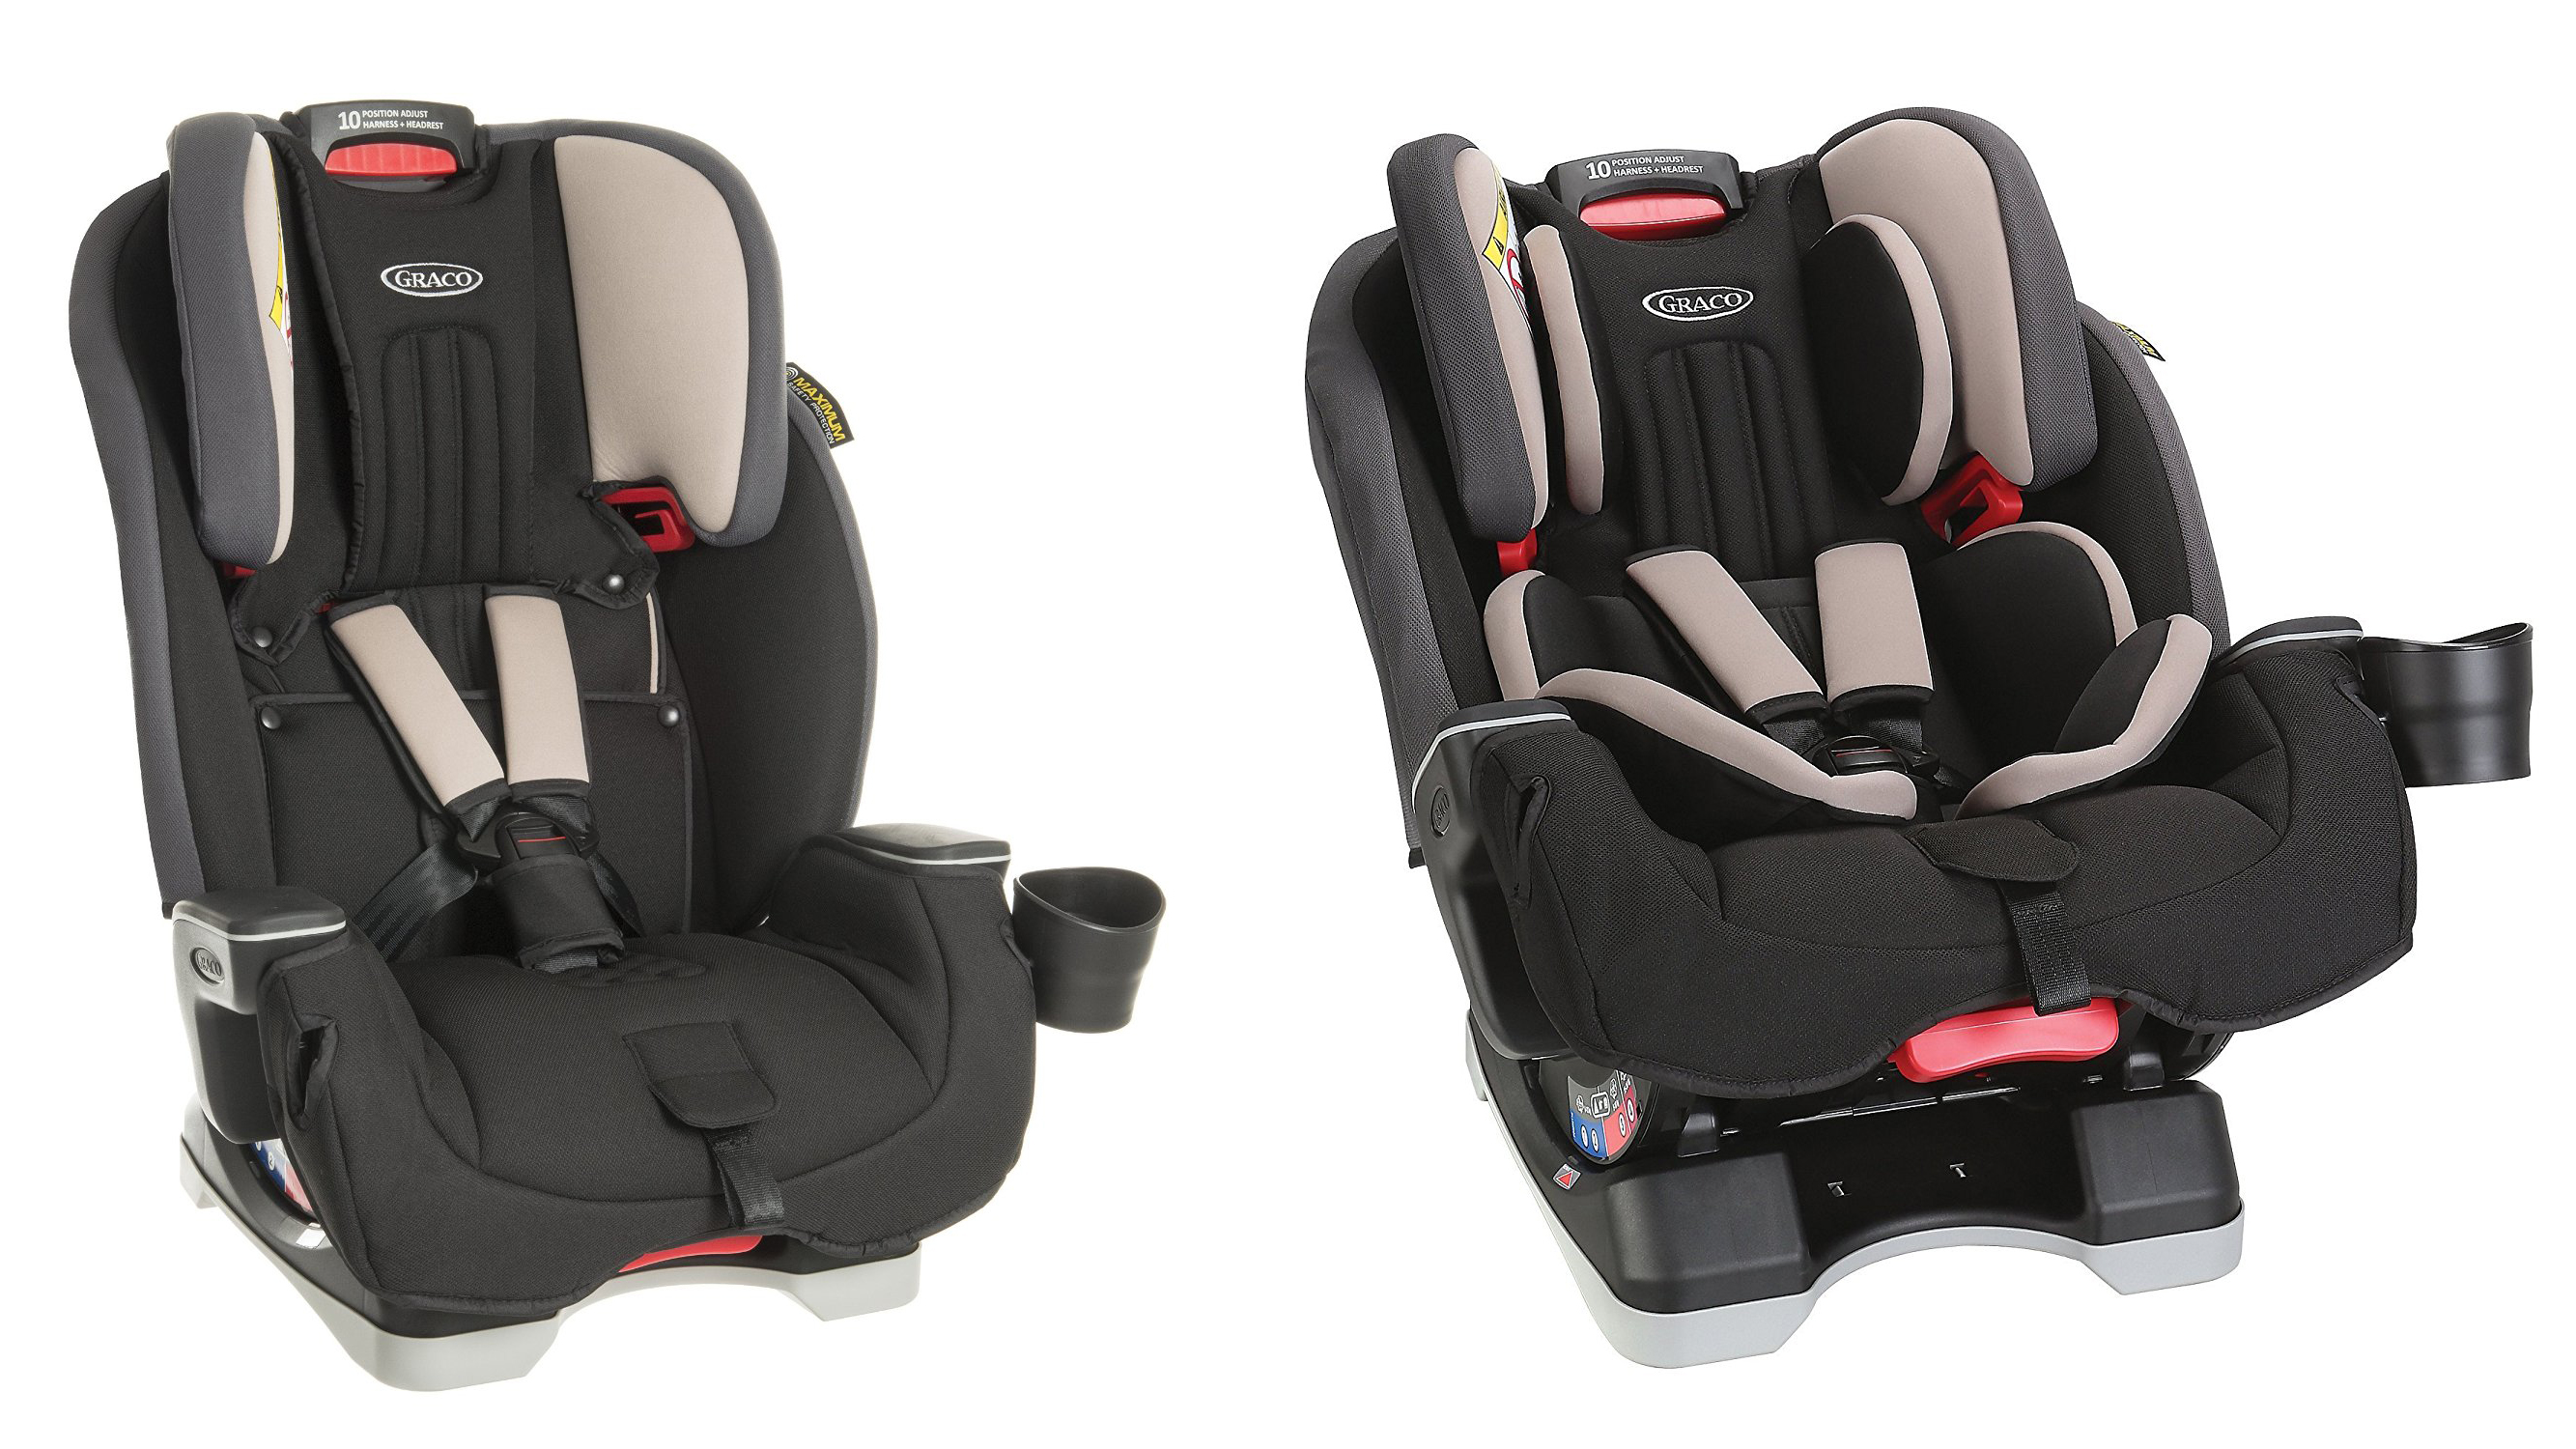 5 BEST car seats 2018: Get the UK's safest baby seat for your baby